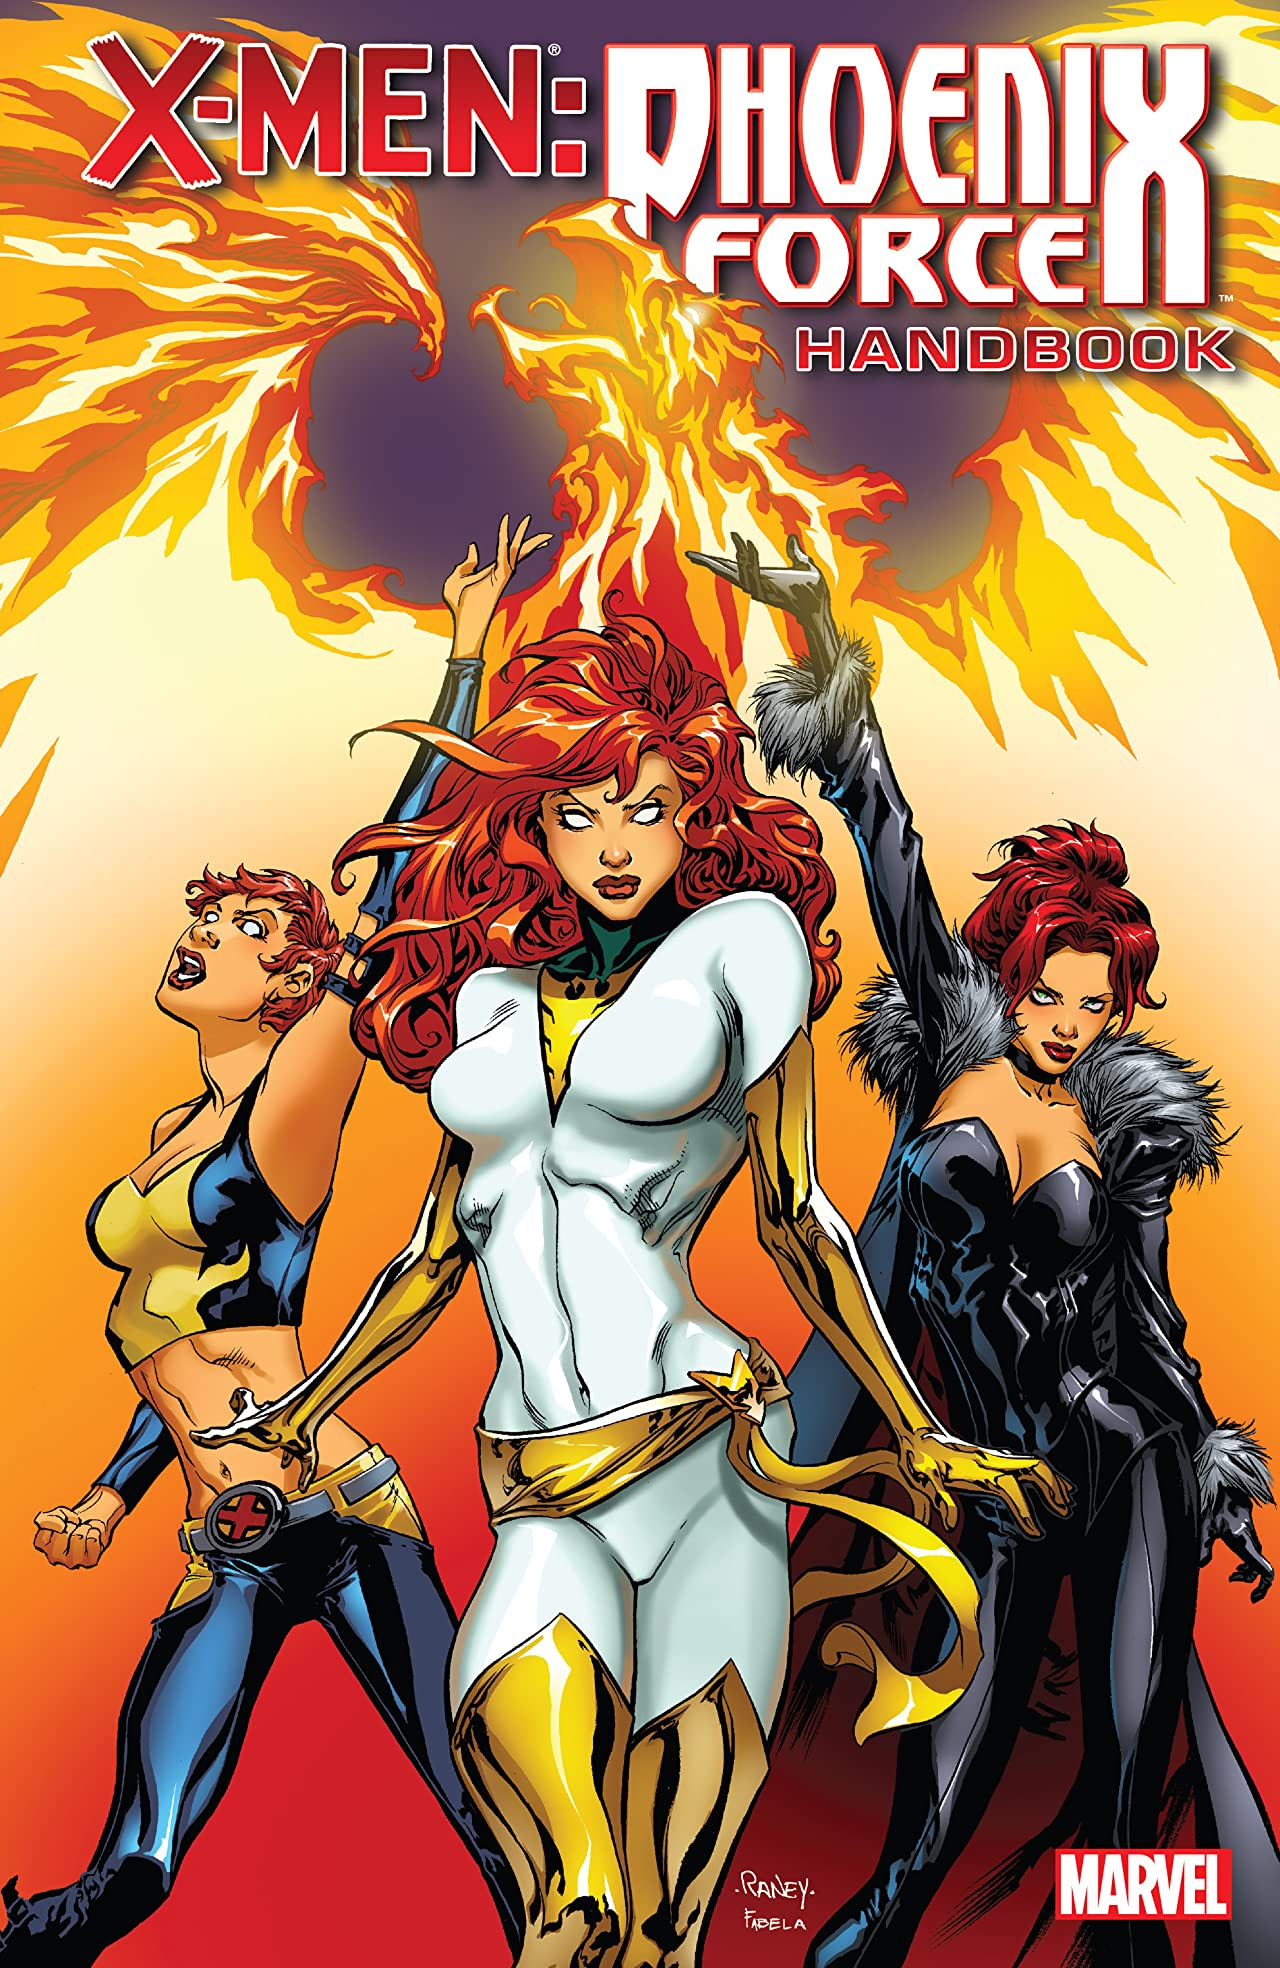 X-Men: Phoenix Force Handbook (2010) #1